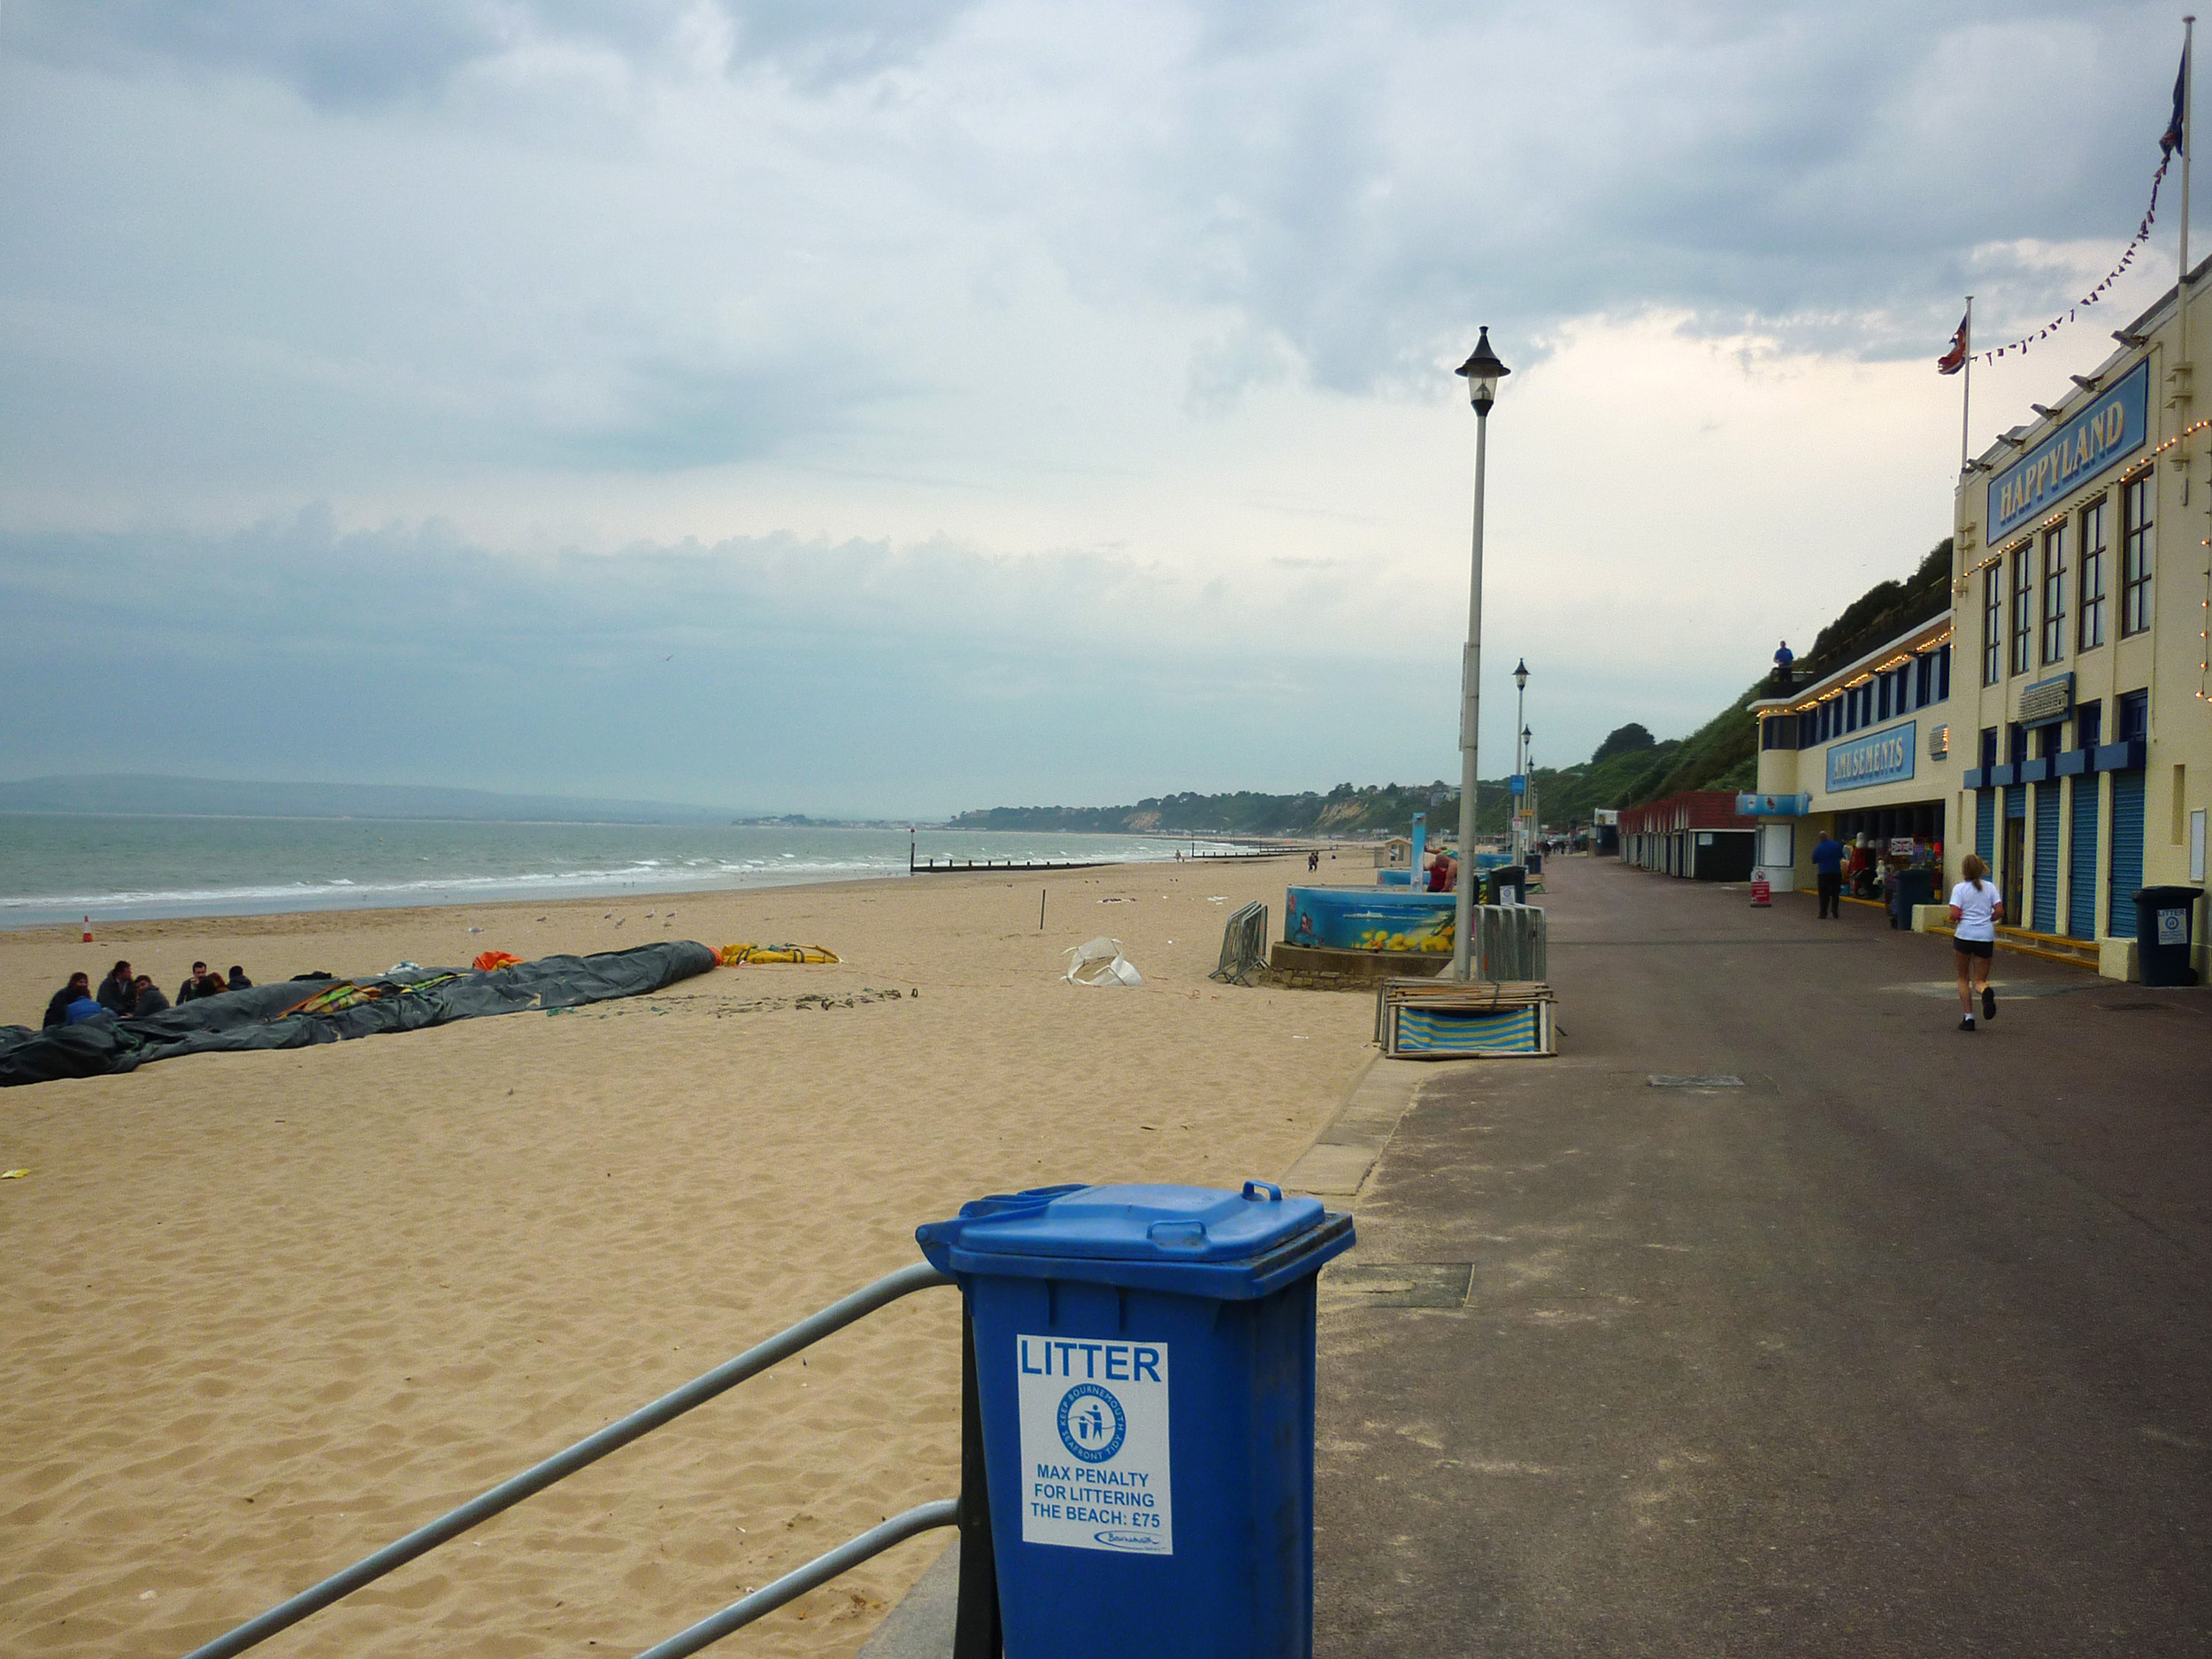 promenade and beach front at bournemouth, dorset,